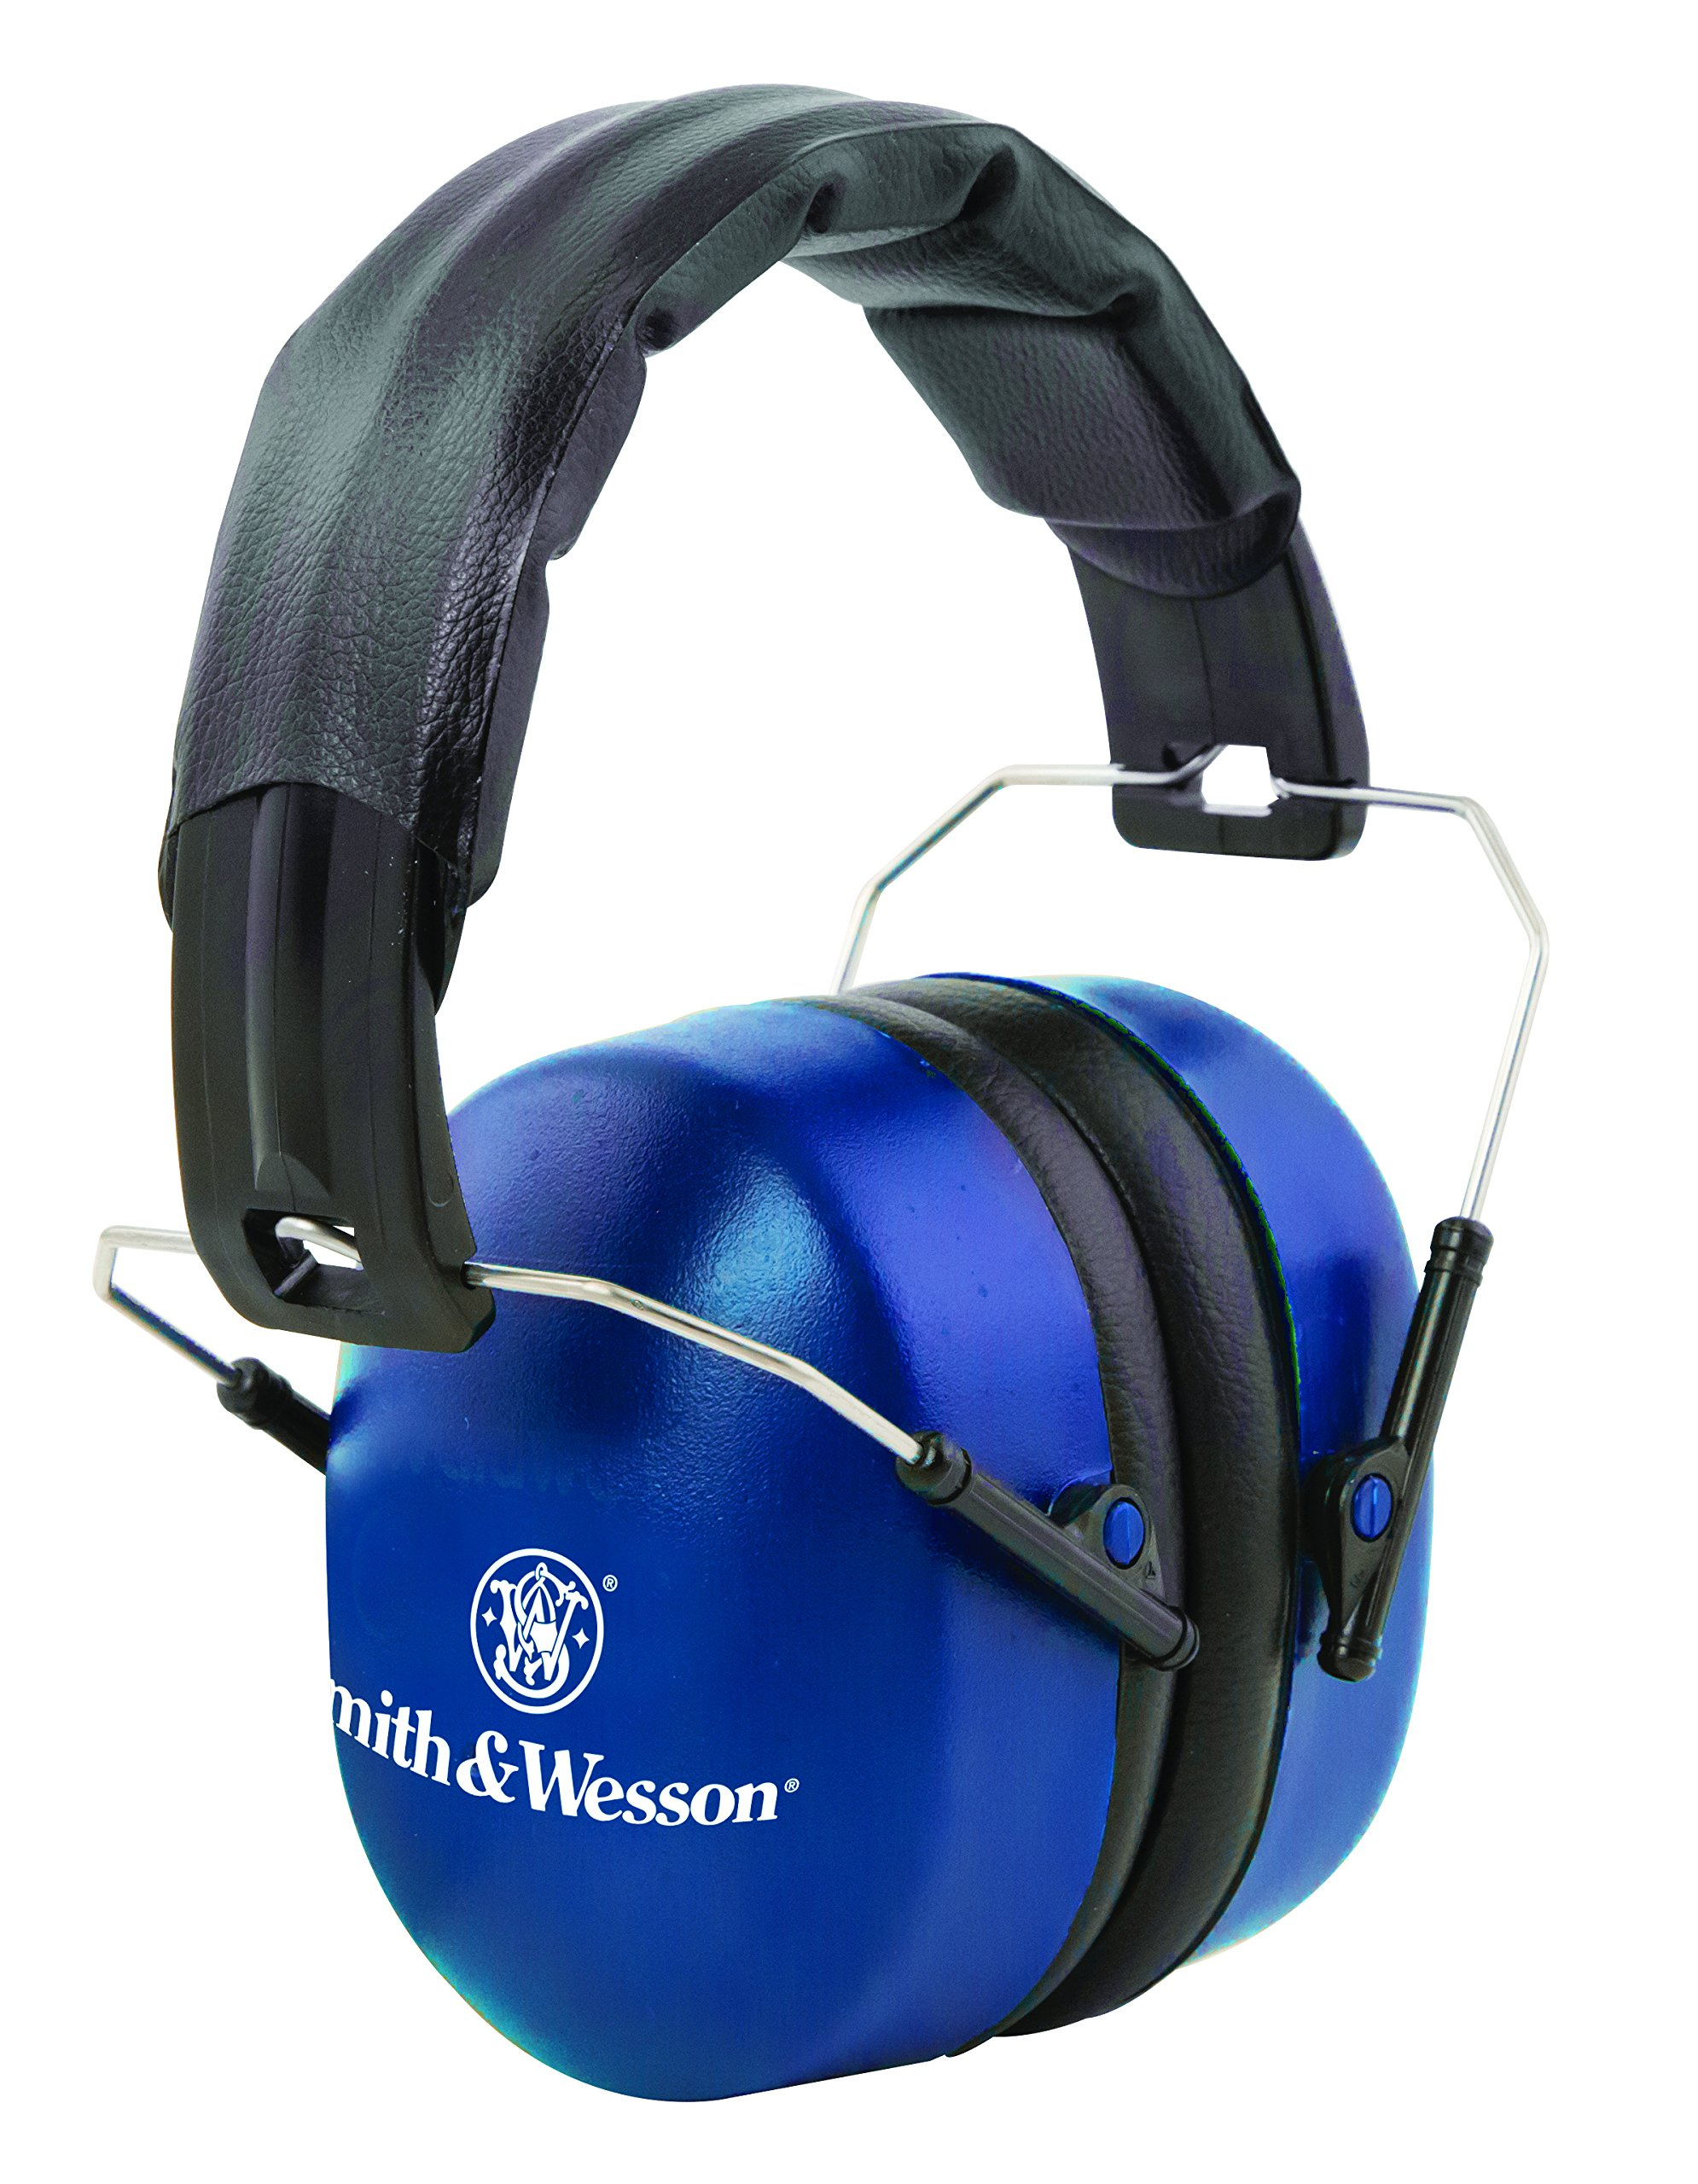 Smith & Wesson Passive 33 NRR Hearing Protection Muffs with Lightweight Design and Adjustable Earmuffs for Shooting, Hunting and Range by SMITH & WESSON